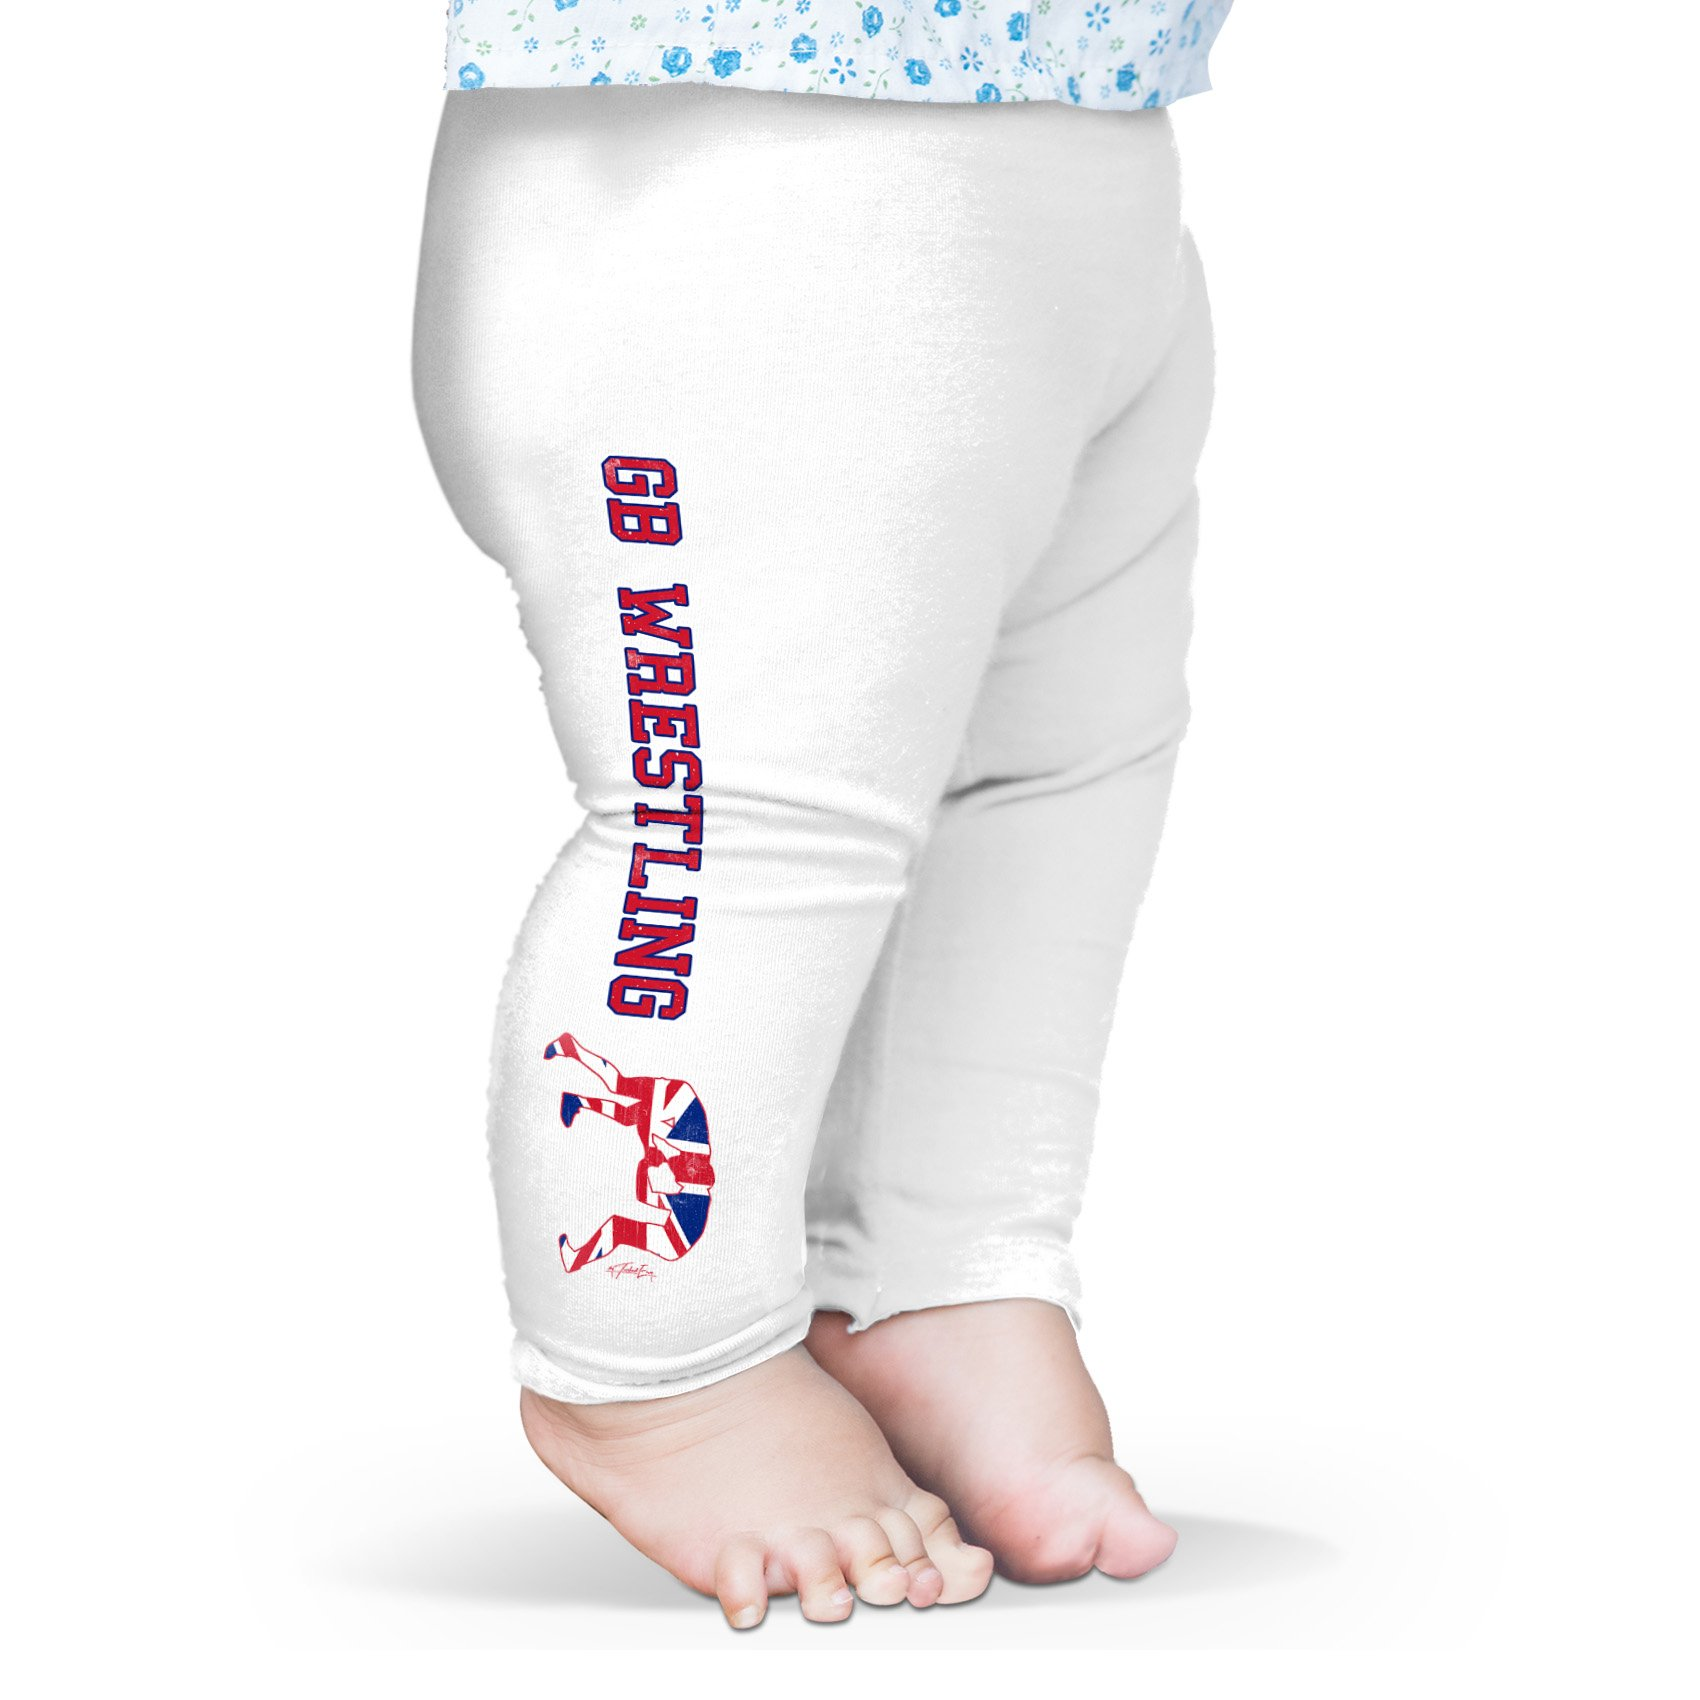 TWISTED ENVY Leggings For Women GB Wrestling Baby Leggings Pants 3-6 Months White by TWISTED ENVY